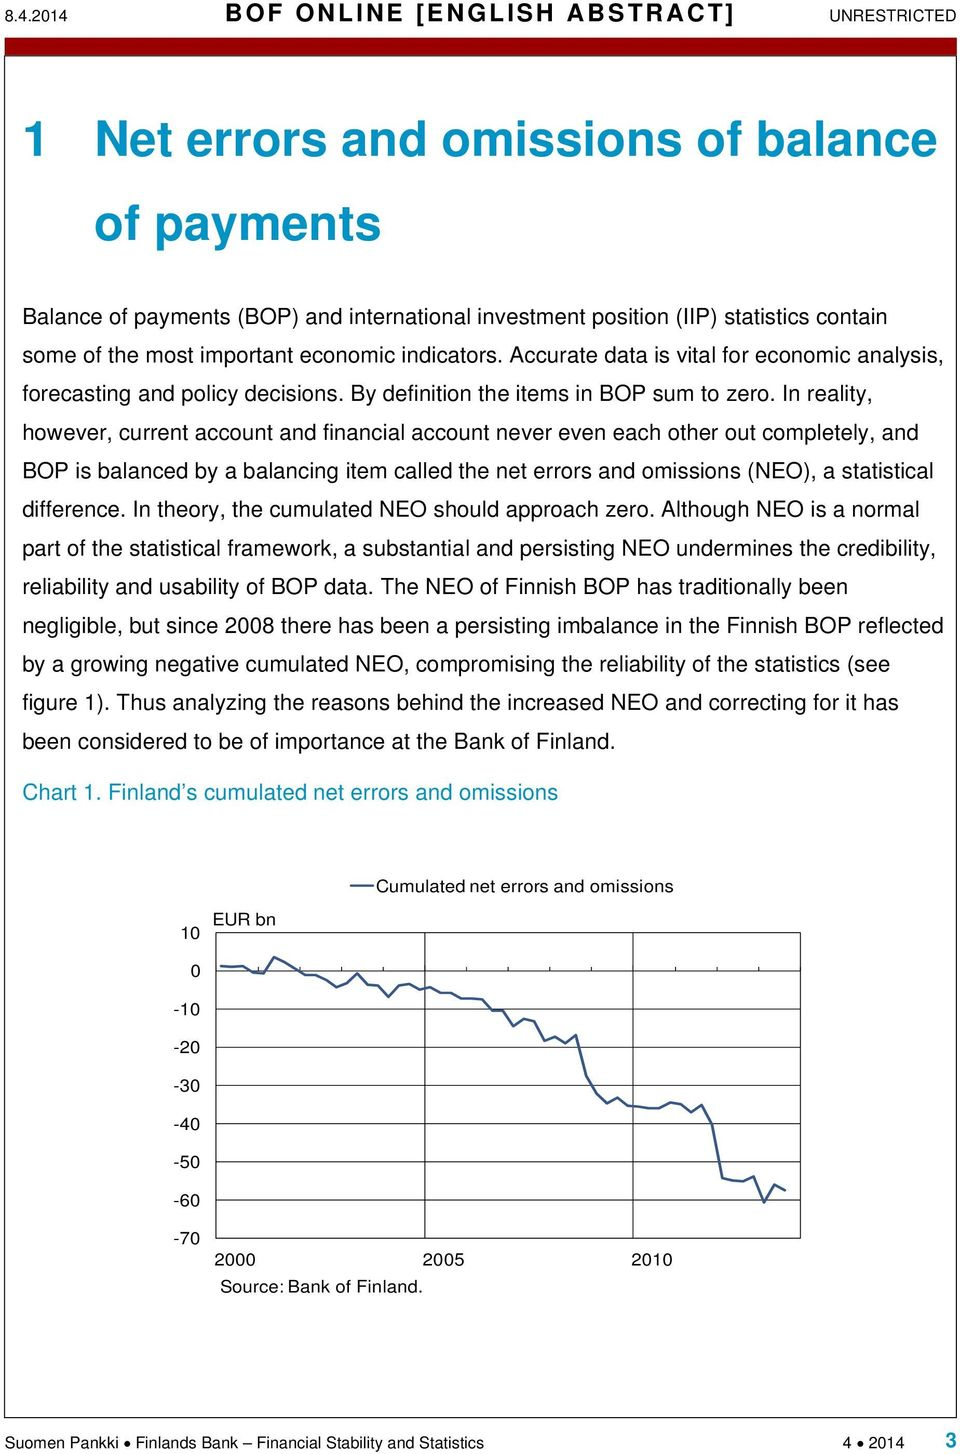 In reality, however, current account and financial account never even each other out completely, and BOP is balanced by a balancing item called the net errors and omissions (NEO), a statistical